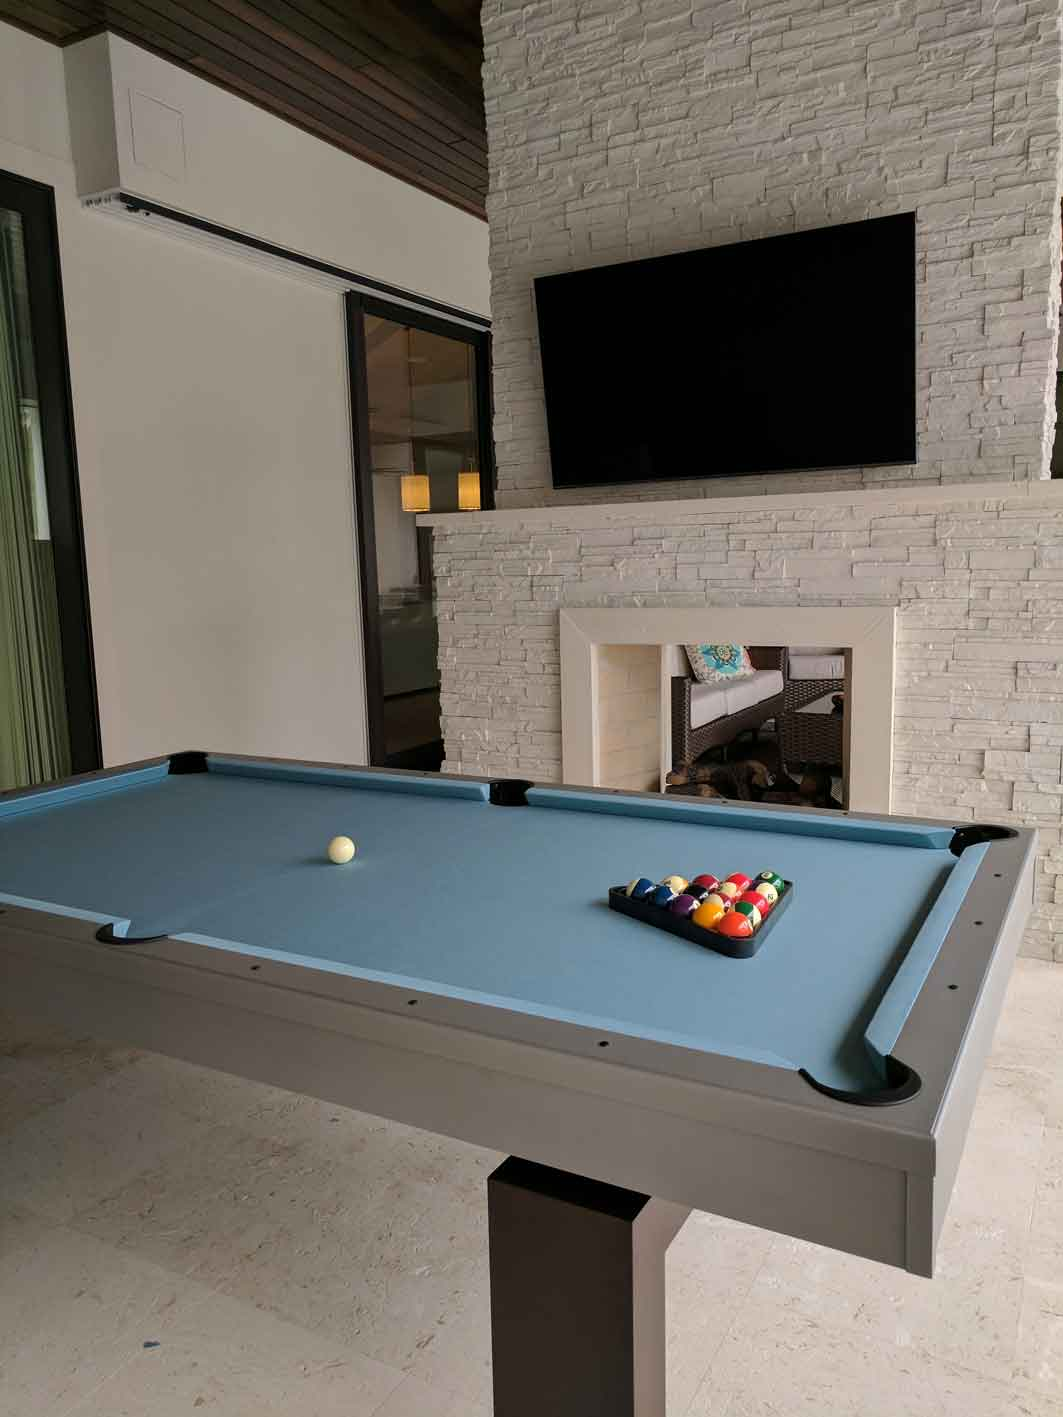 South Beach custom outdoor pool table in client's outdoor living space